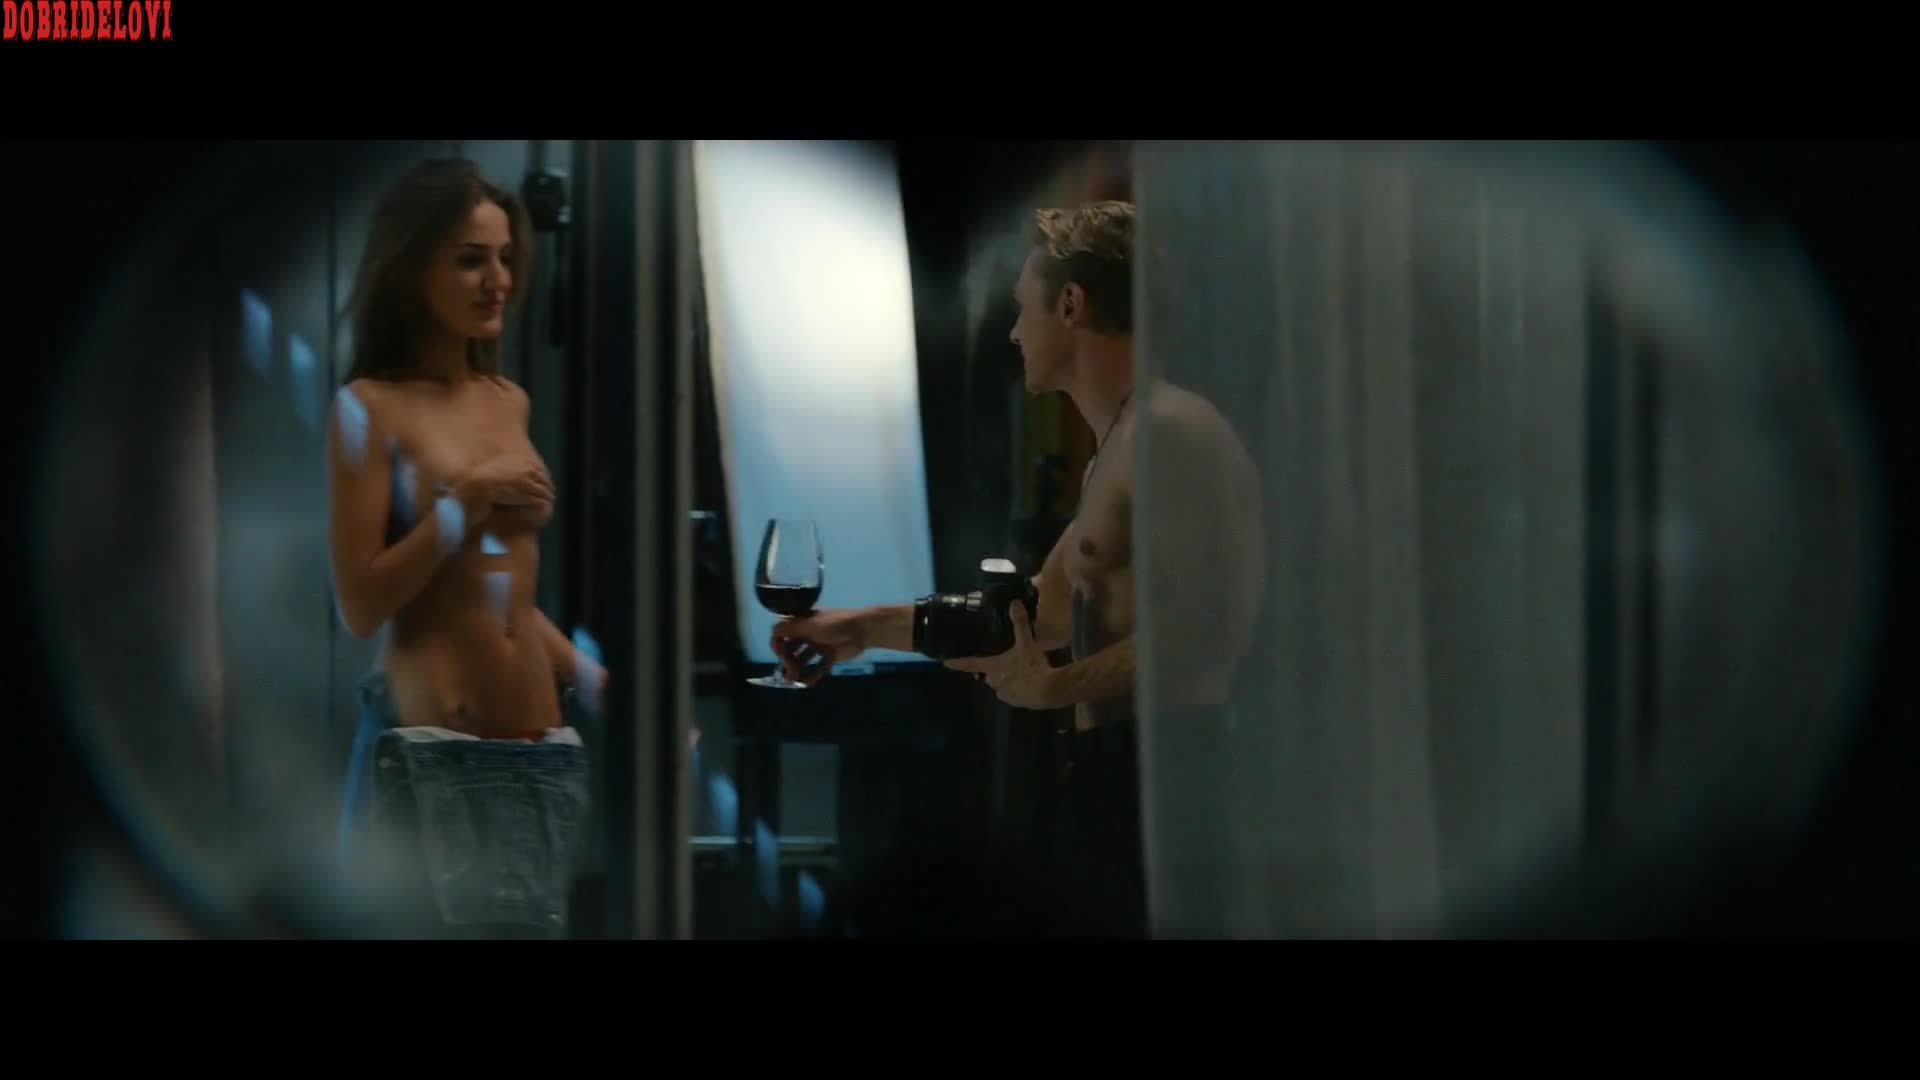 Cait Alexander being watched while having sex scene from The Voyeur